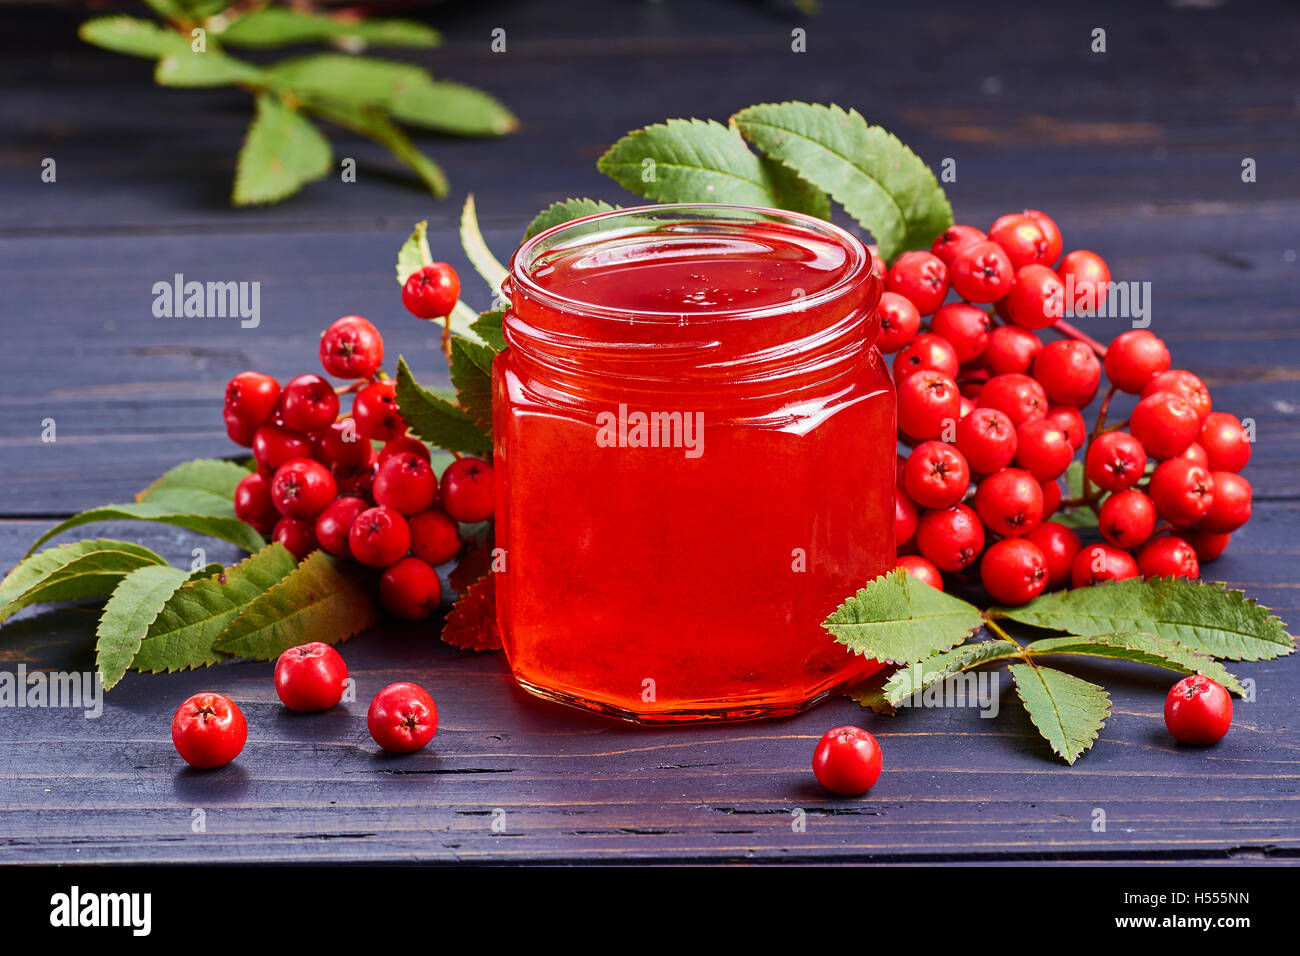 Glass jar with syrup of rowan berries on dark wooden table. - Stock Image